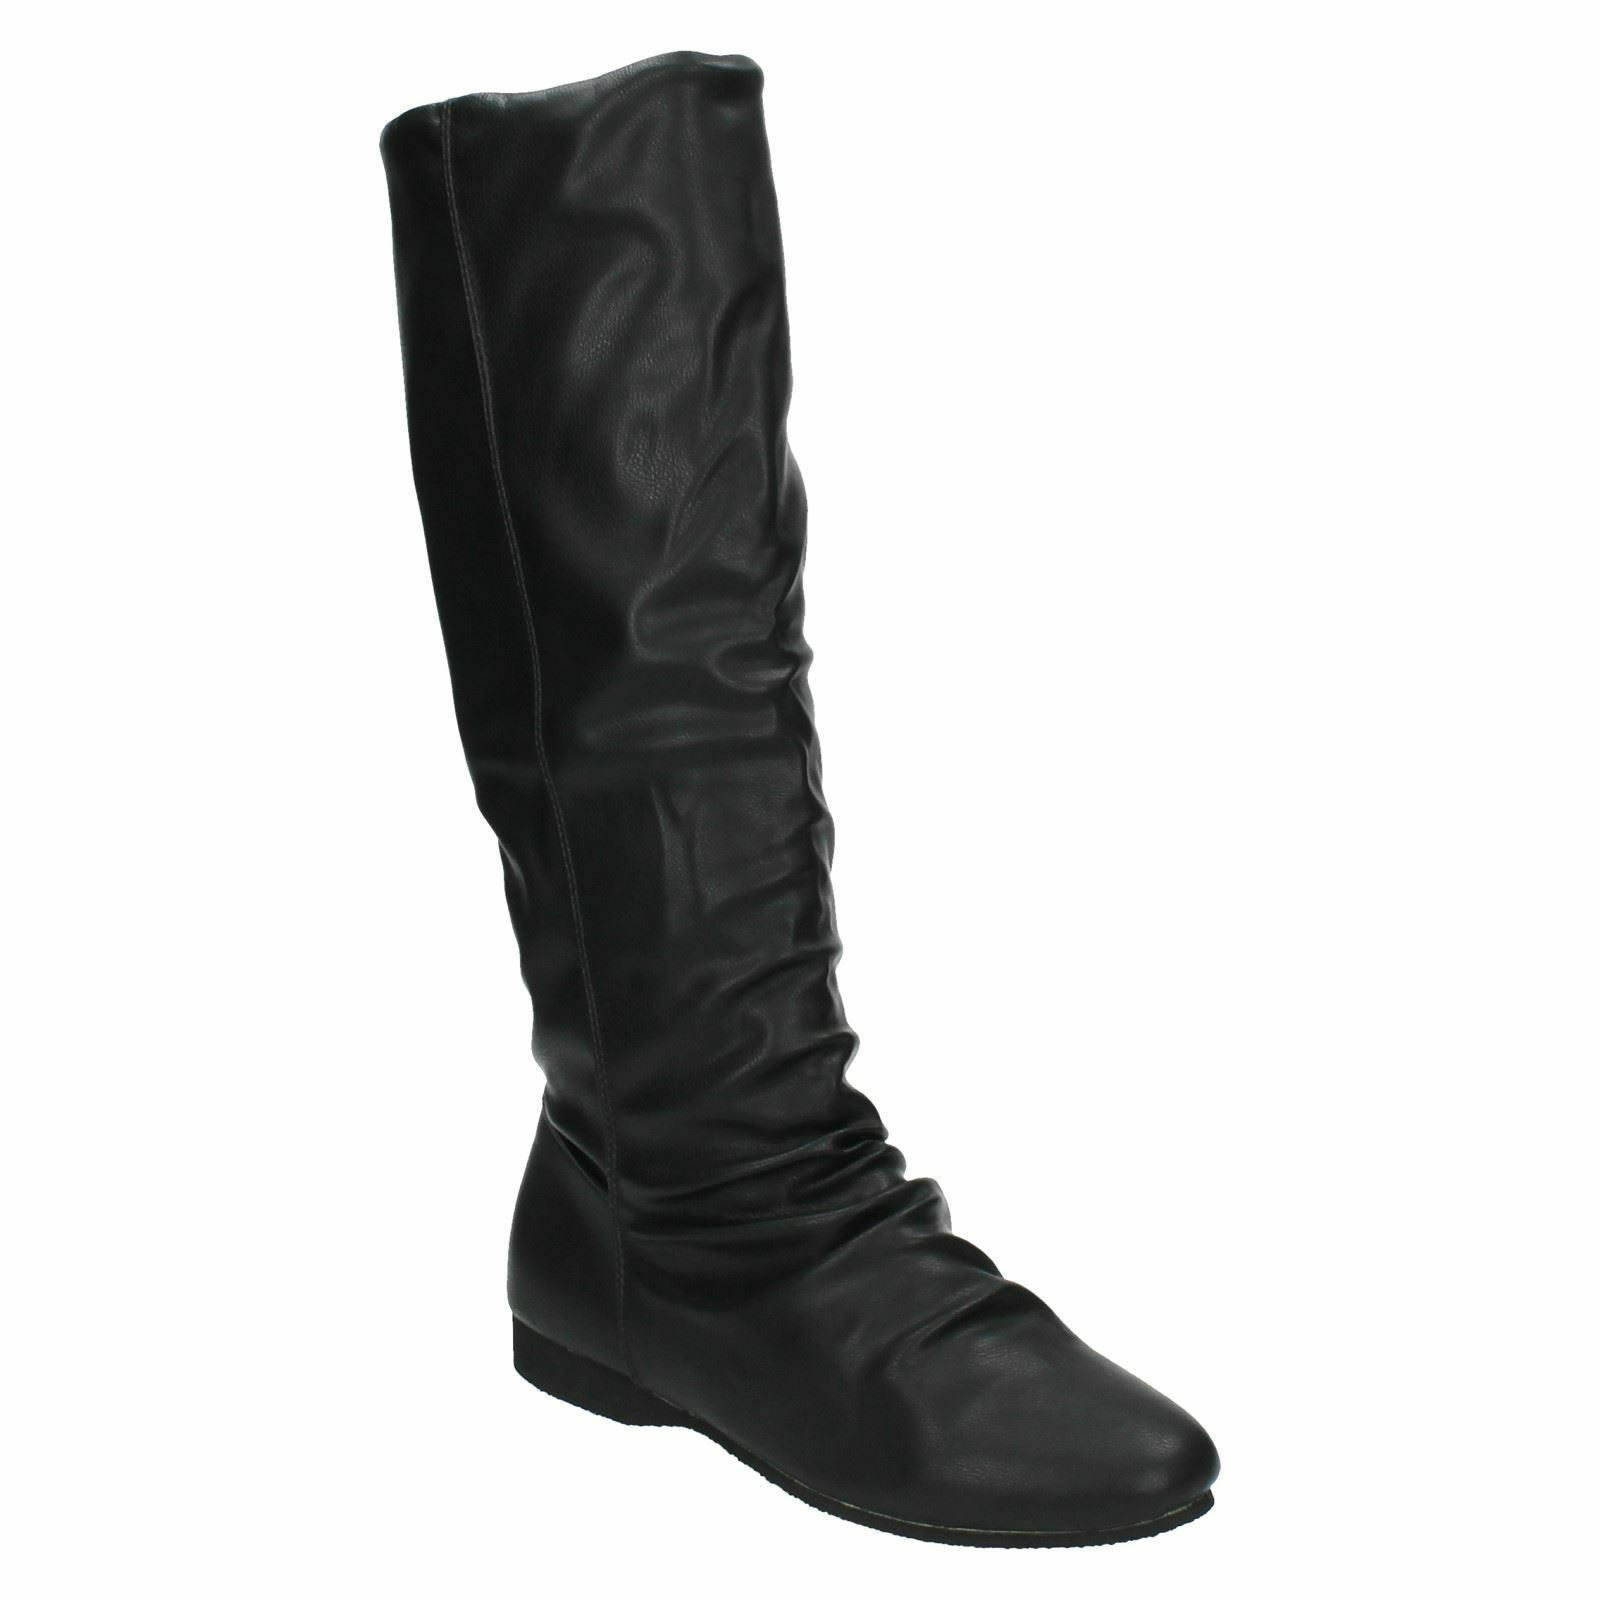 WOMENS LADIES BLACK FLAT ROUCHED WARM FUR LINED LONG BOOTS SPOT ON F5477 £9.99